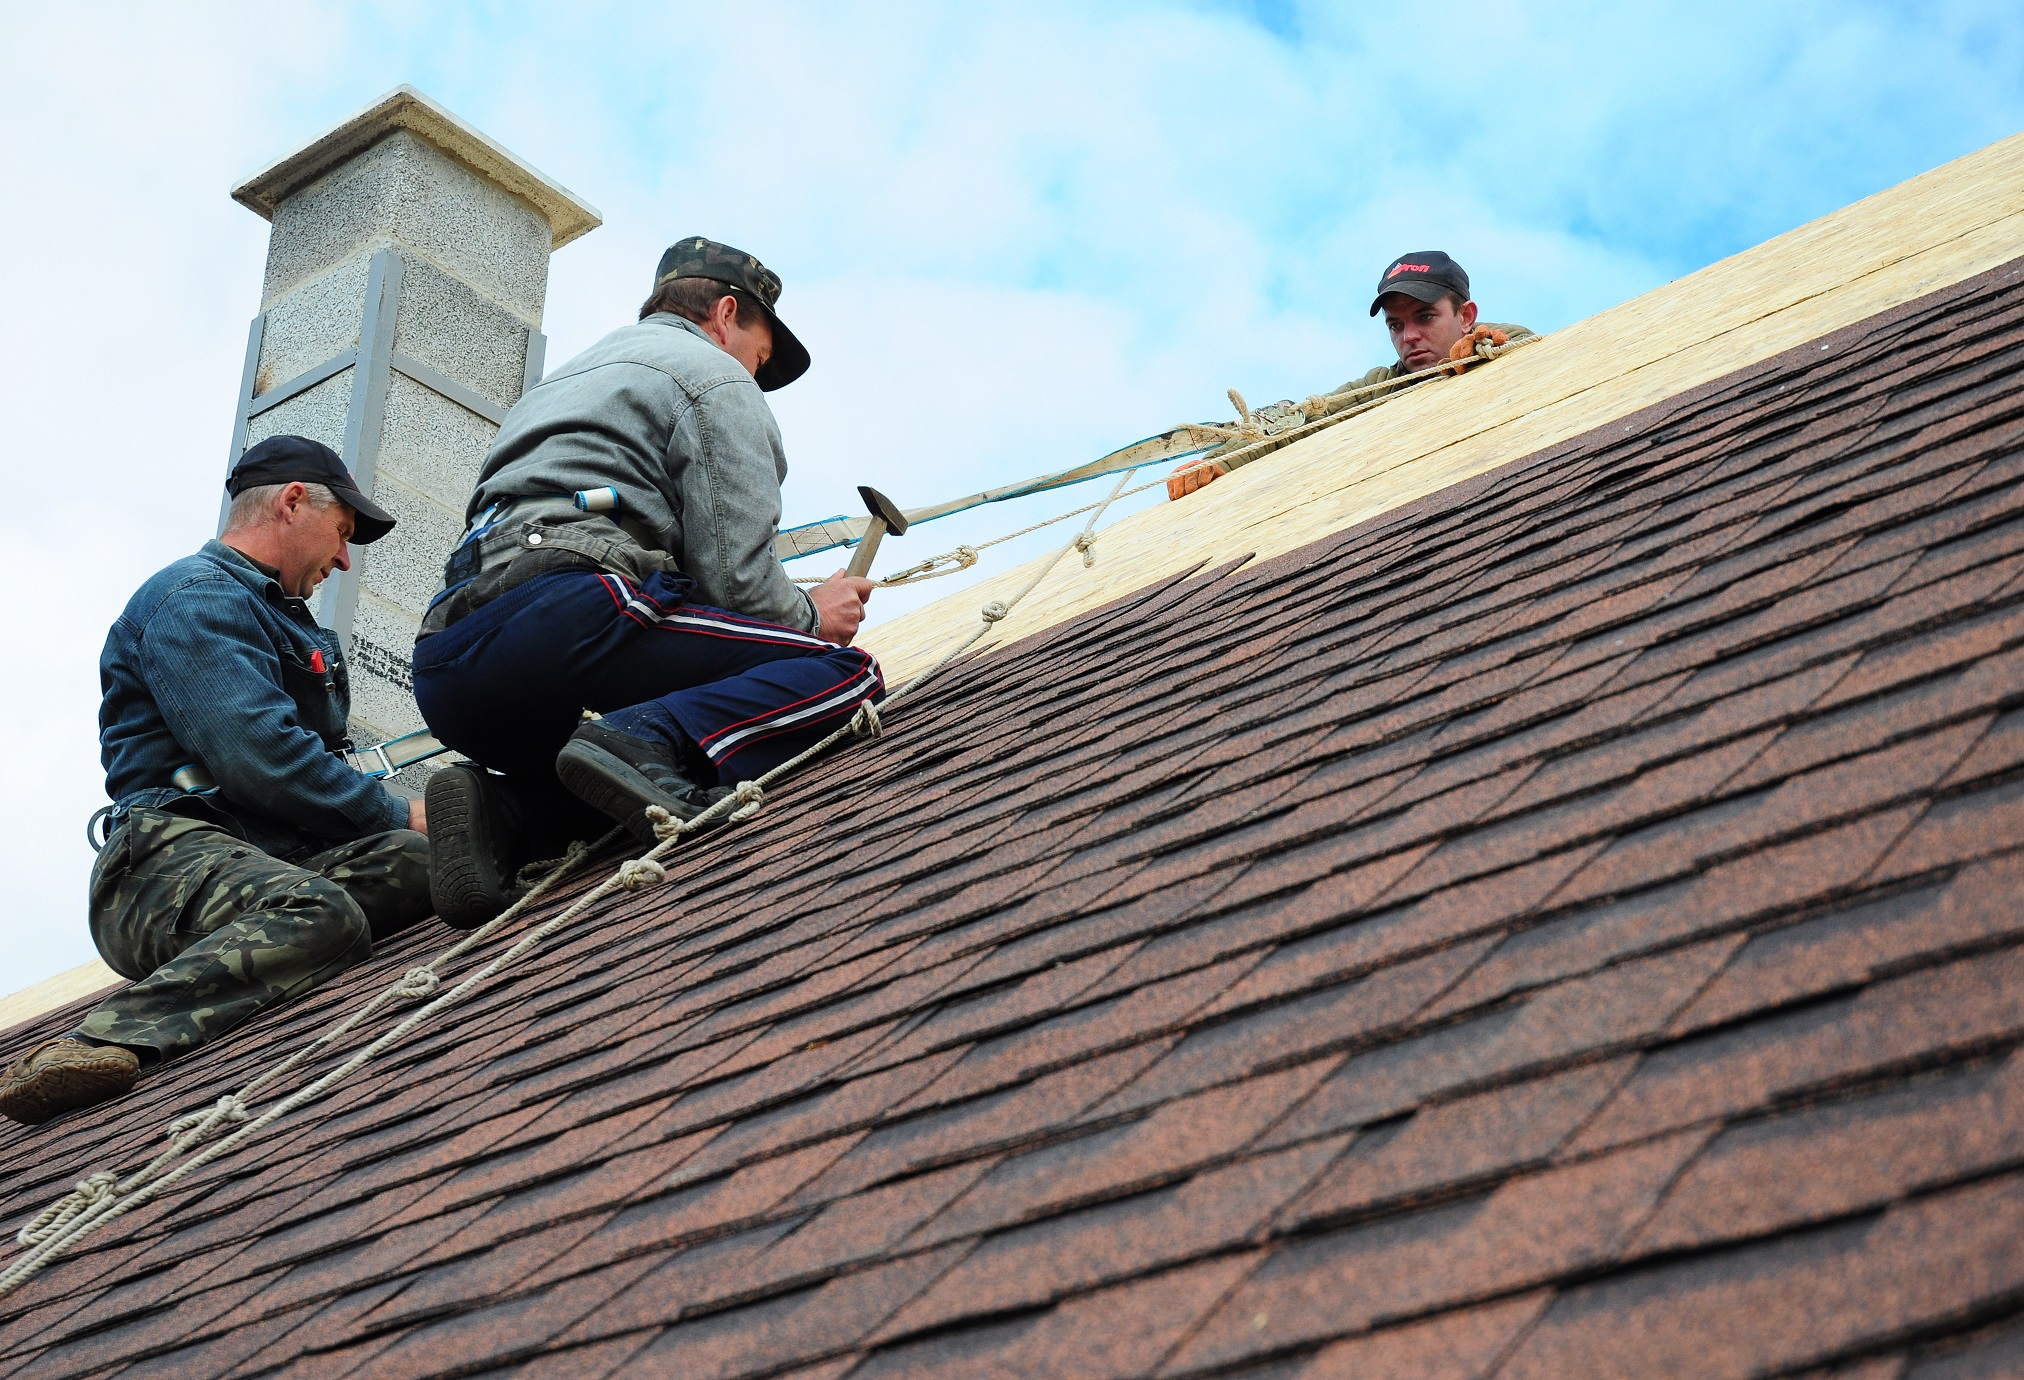 Tips For Taking Safety Measures While Roof Repair - Furniture Door Blog